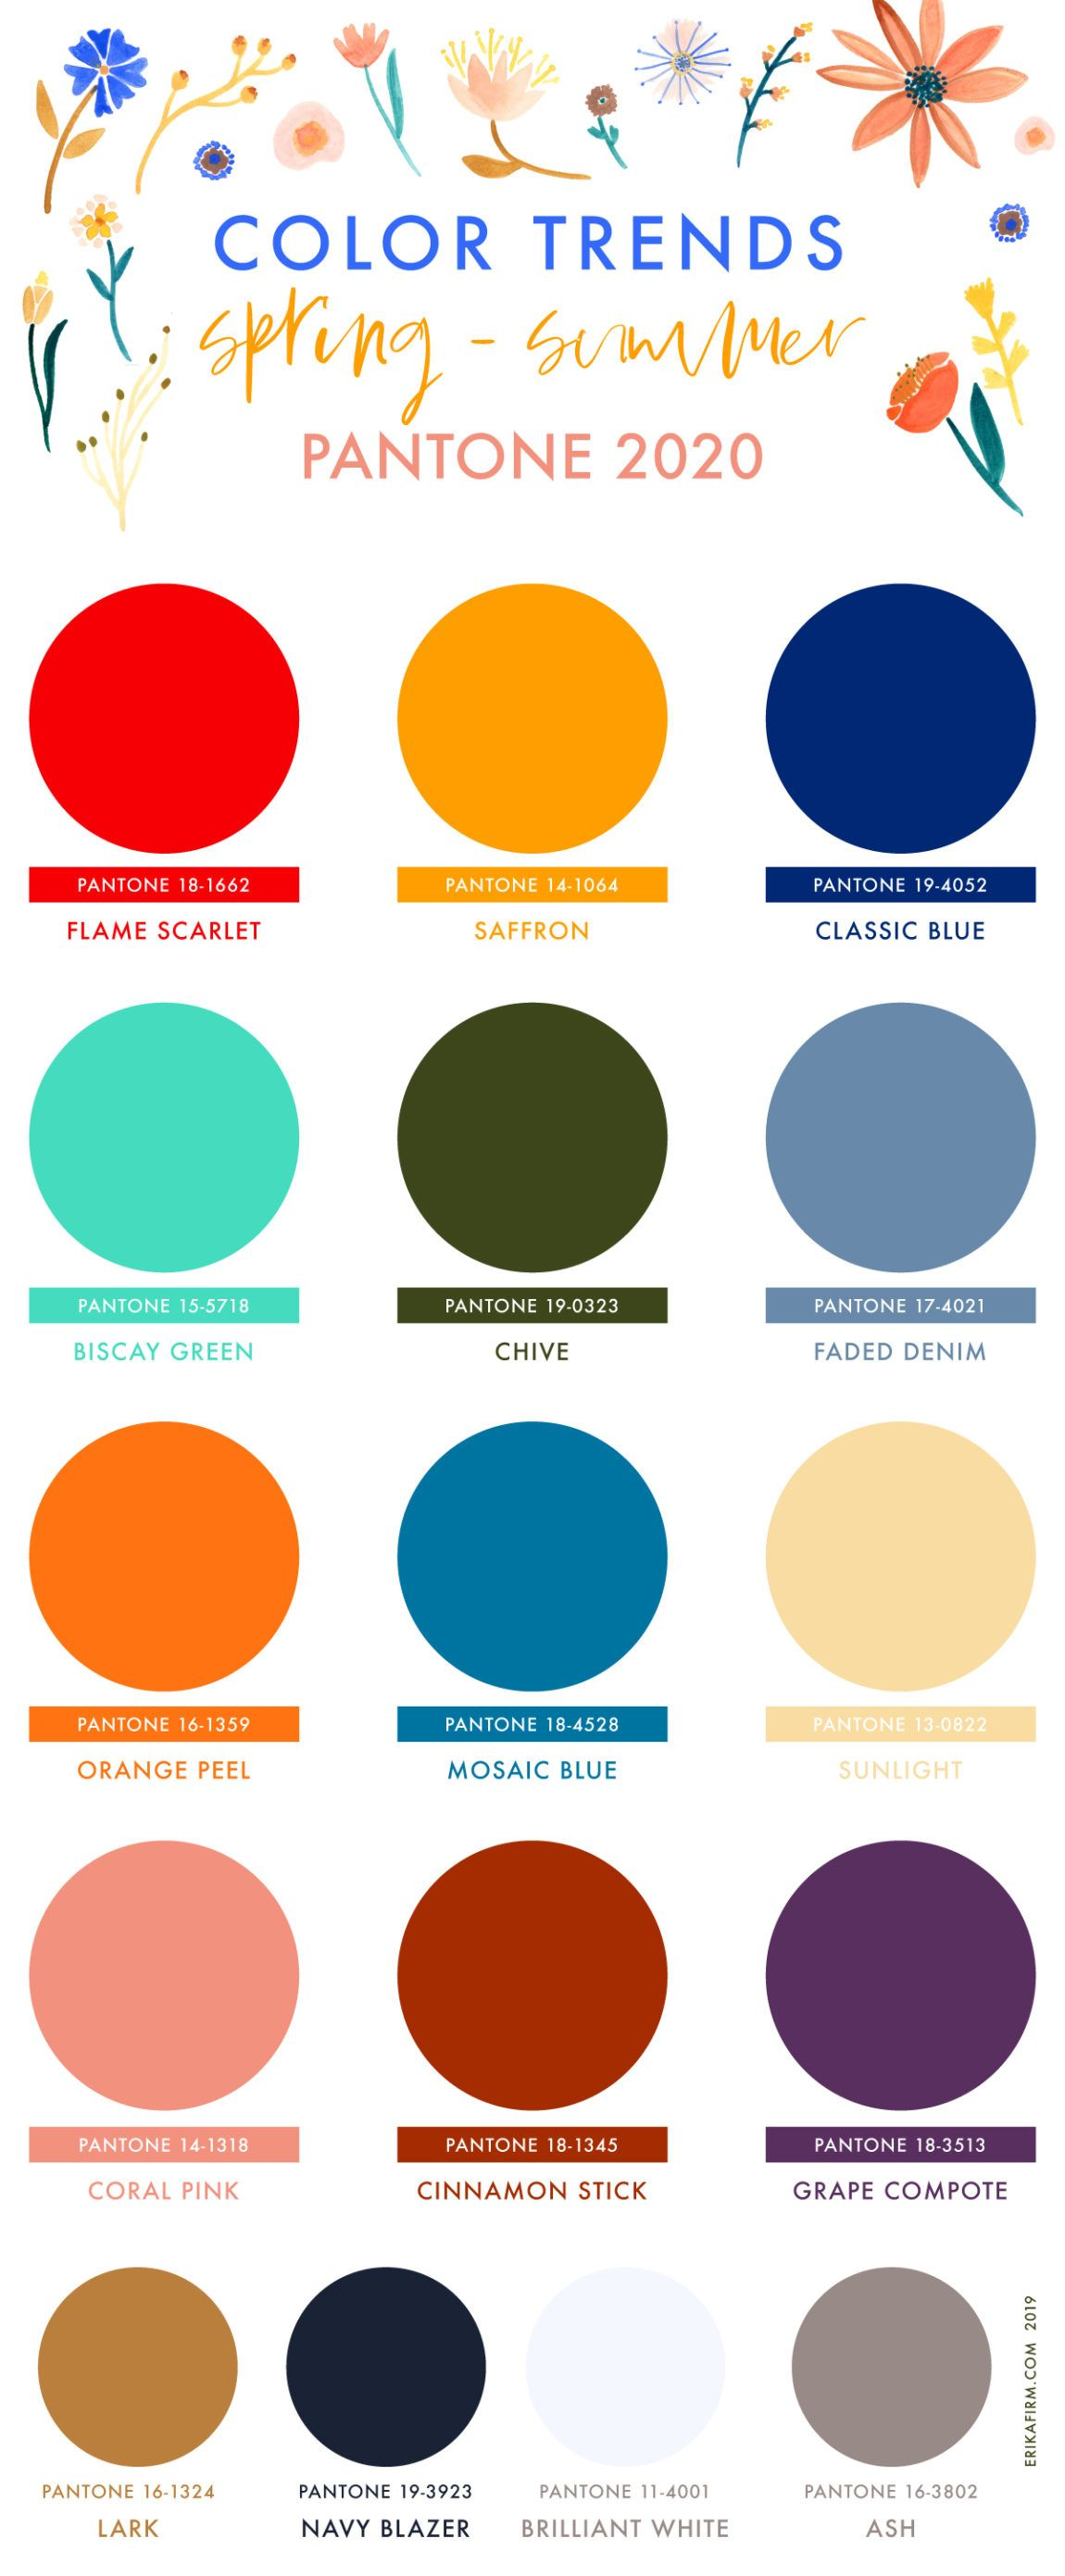 spring summer 2020 pantone colors trends erika firm in color fashion 7649 562